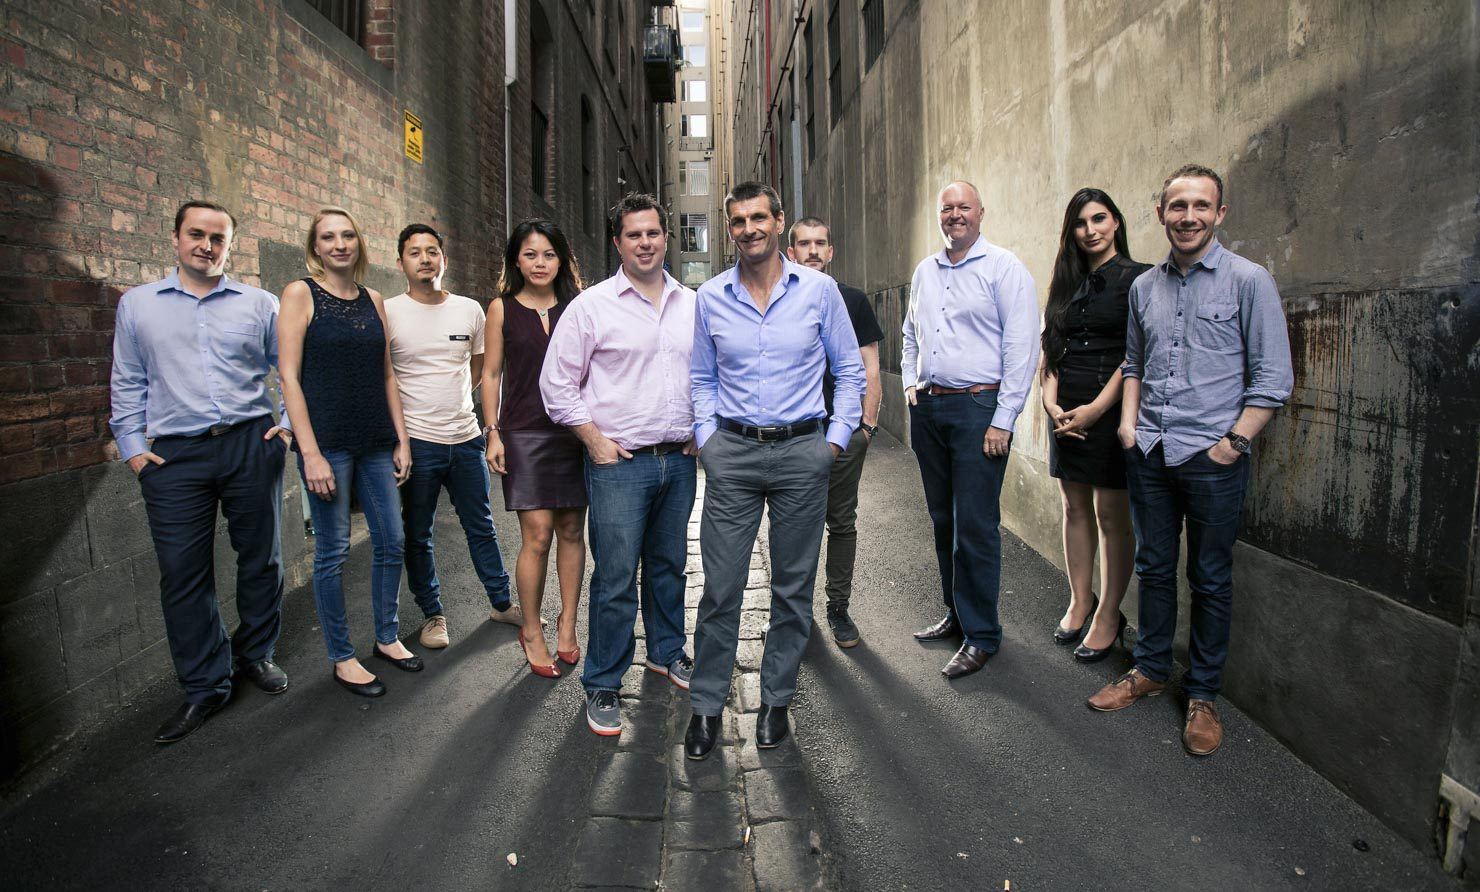 Startup team photo in a Melbourne Laneway